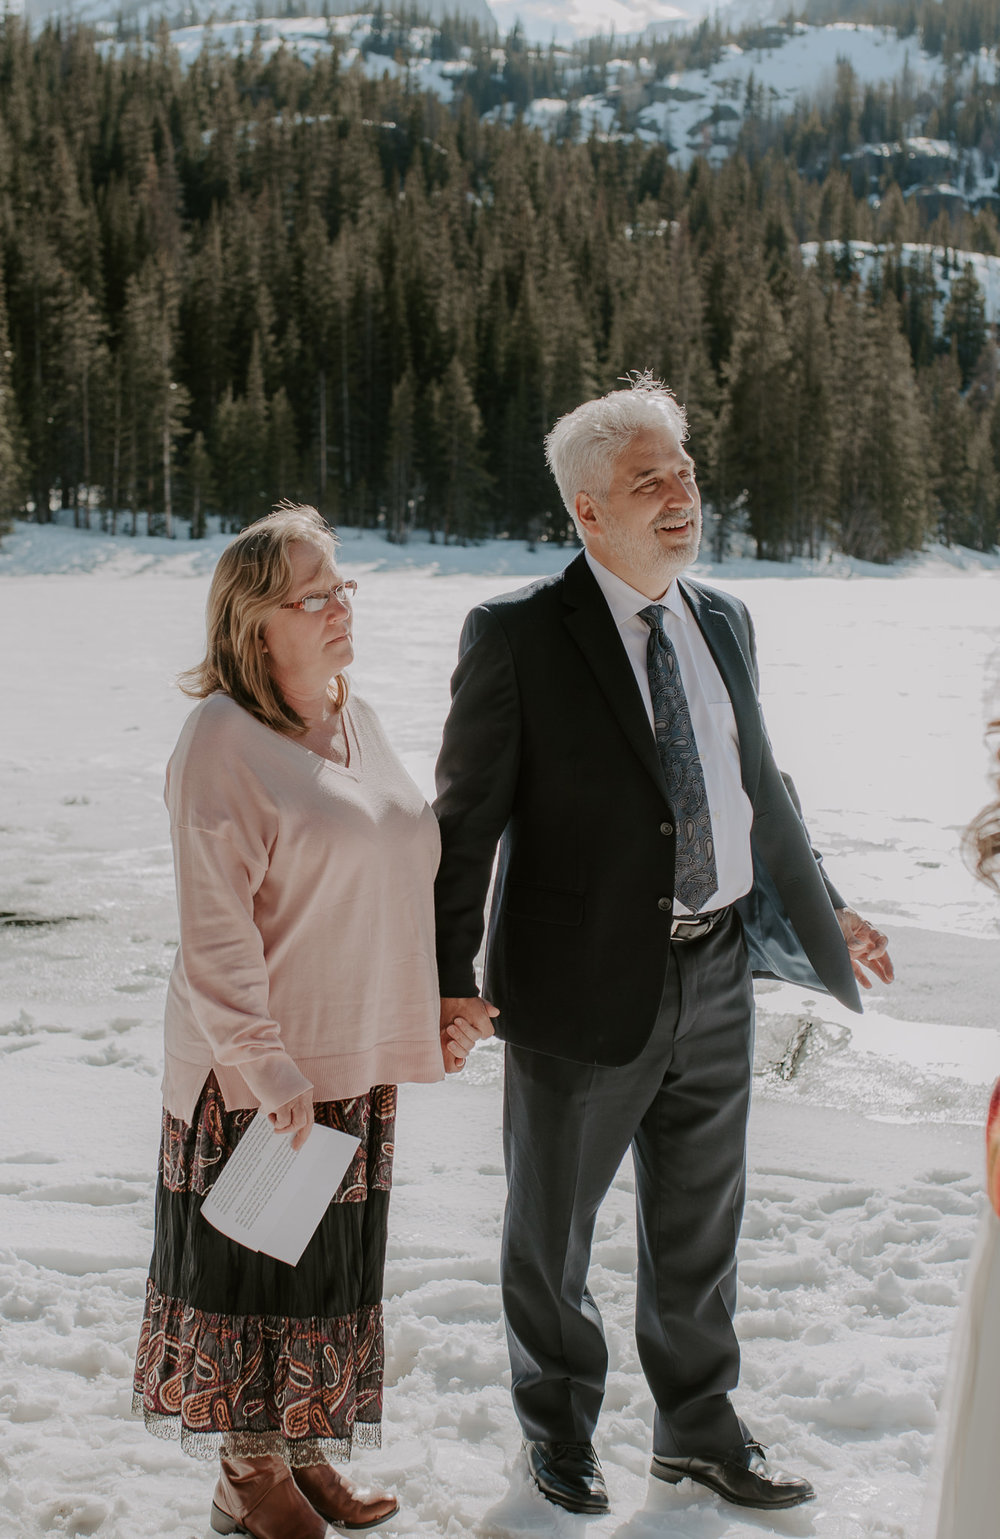 Colorado adventure elopement photographer. Bear Lake winter elopement.